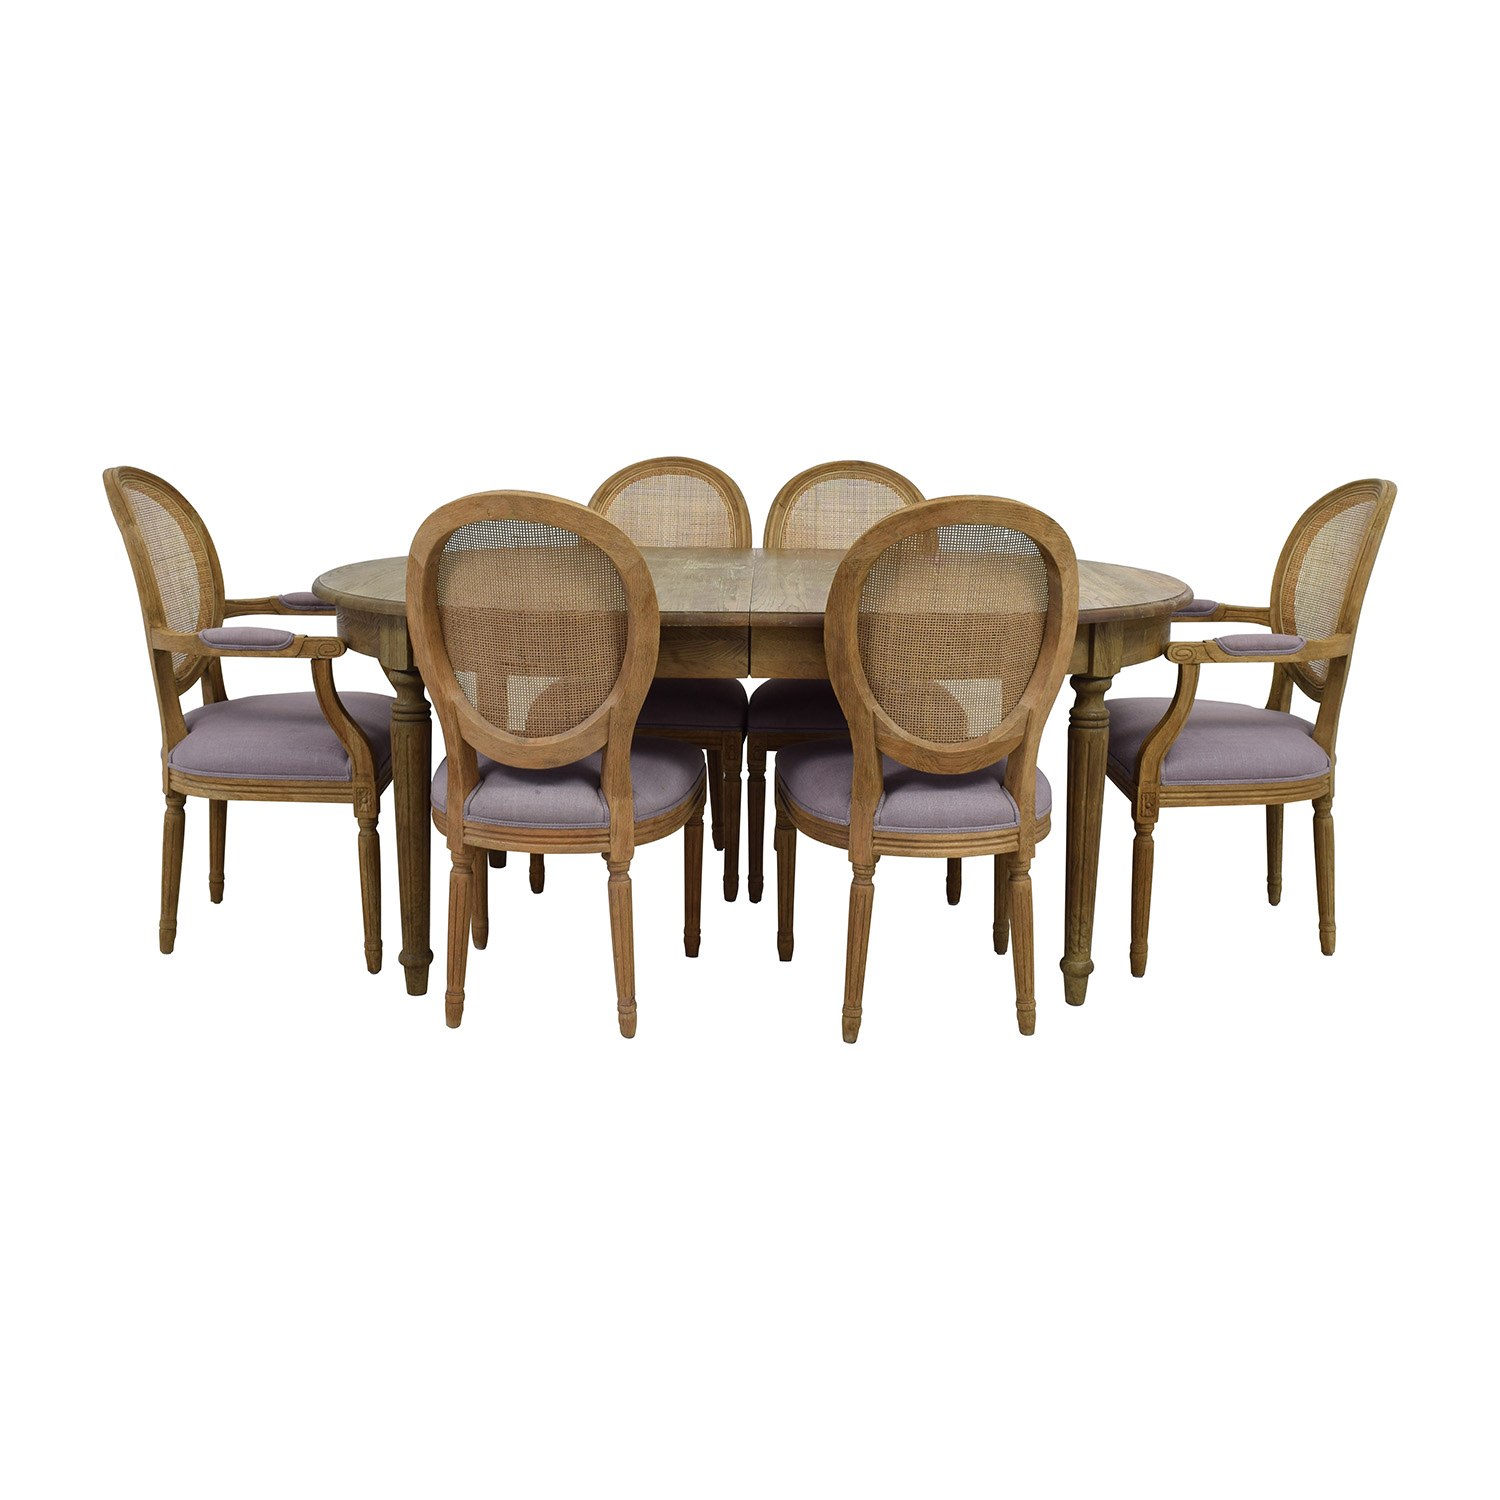 Restoration Hardware Restoration Hardware Rustic Extended Table with Six Chairs coupon